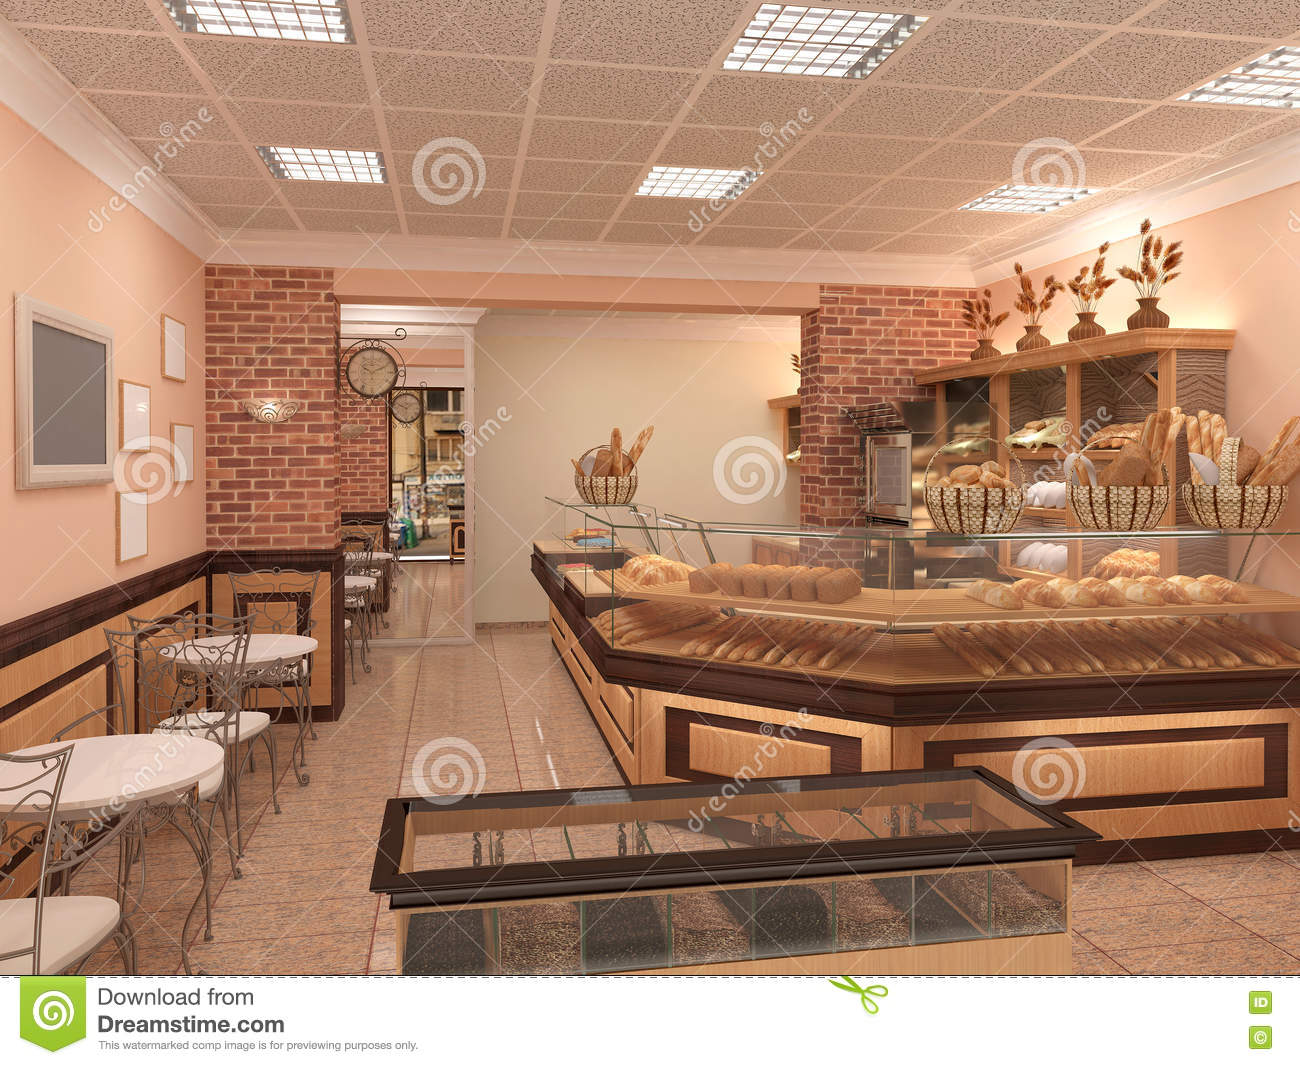 Bakery Interior Design 3d visualization of a bakery interior design stock illustration